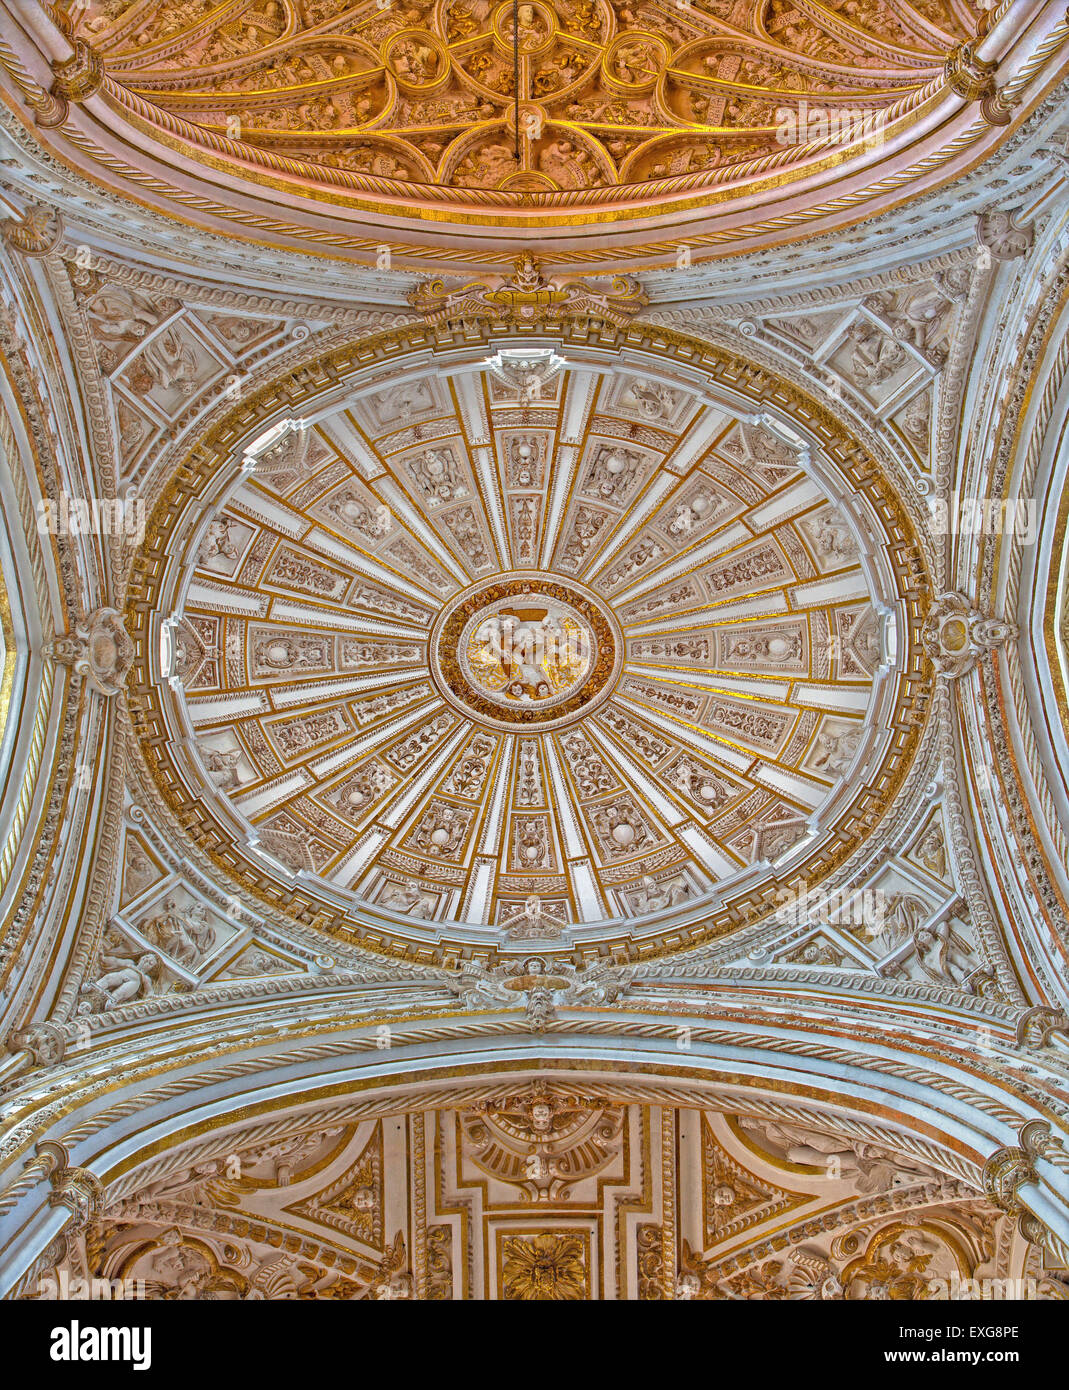 CORDOBA, SPAIN - MAY 28, 2015: Cupola of The Main chapel with the gothic and baroque vault. Stock Photo